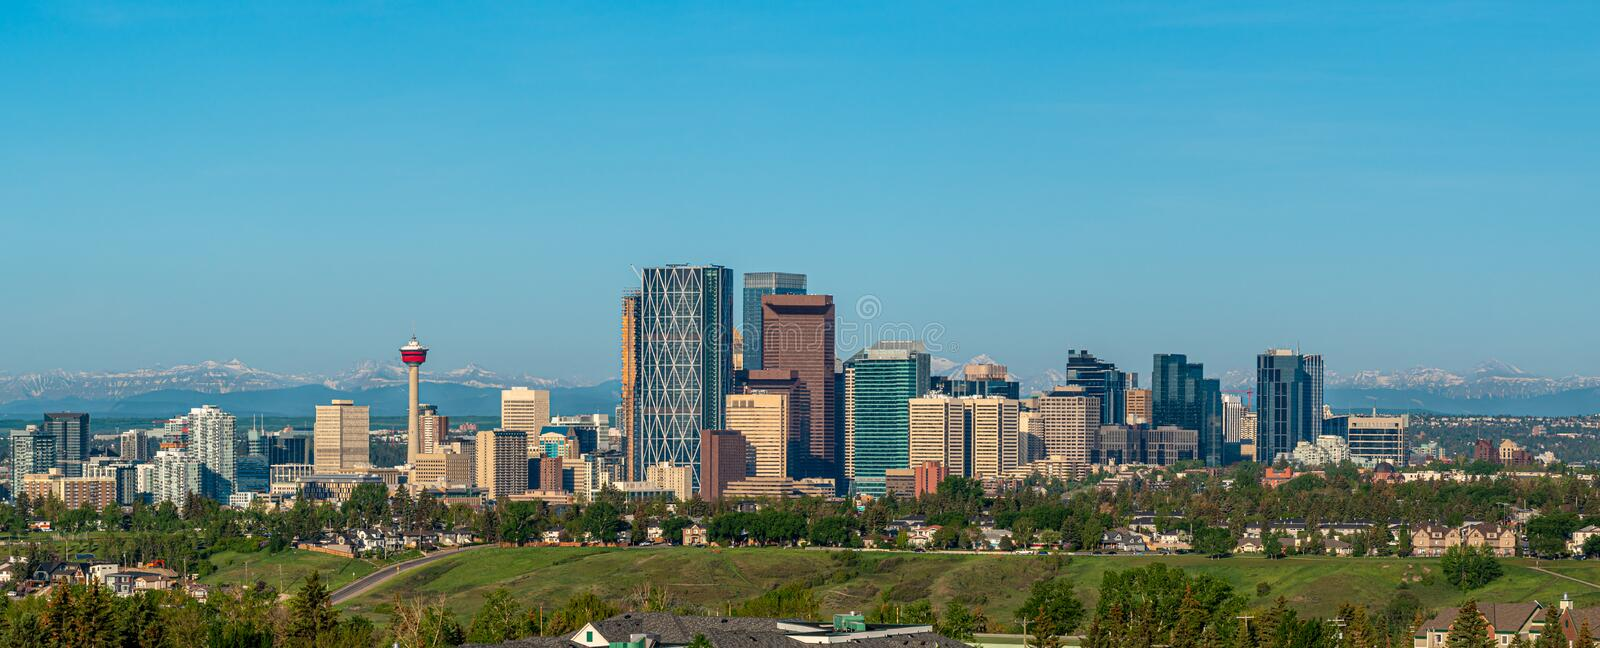 Calgary - panorama of city royalty free stock photos